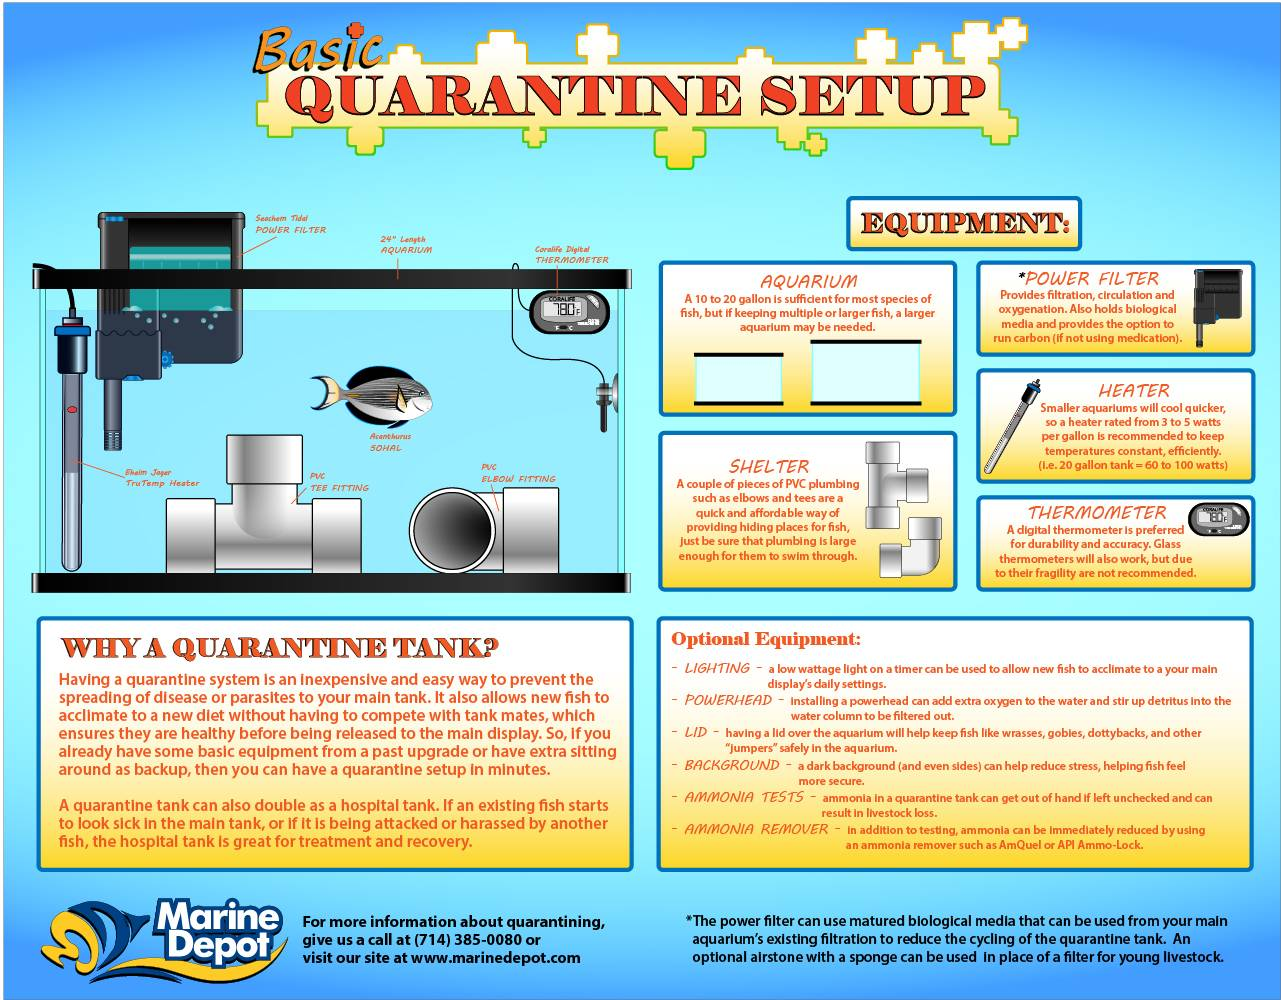 Quarantine tank setup with list of equipment needed and optional equipment recommendations